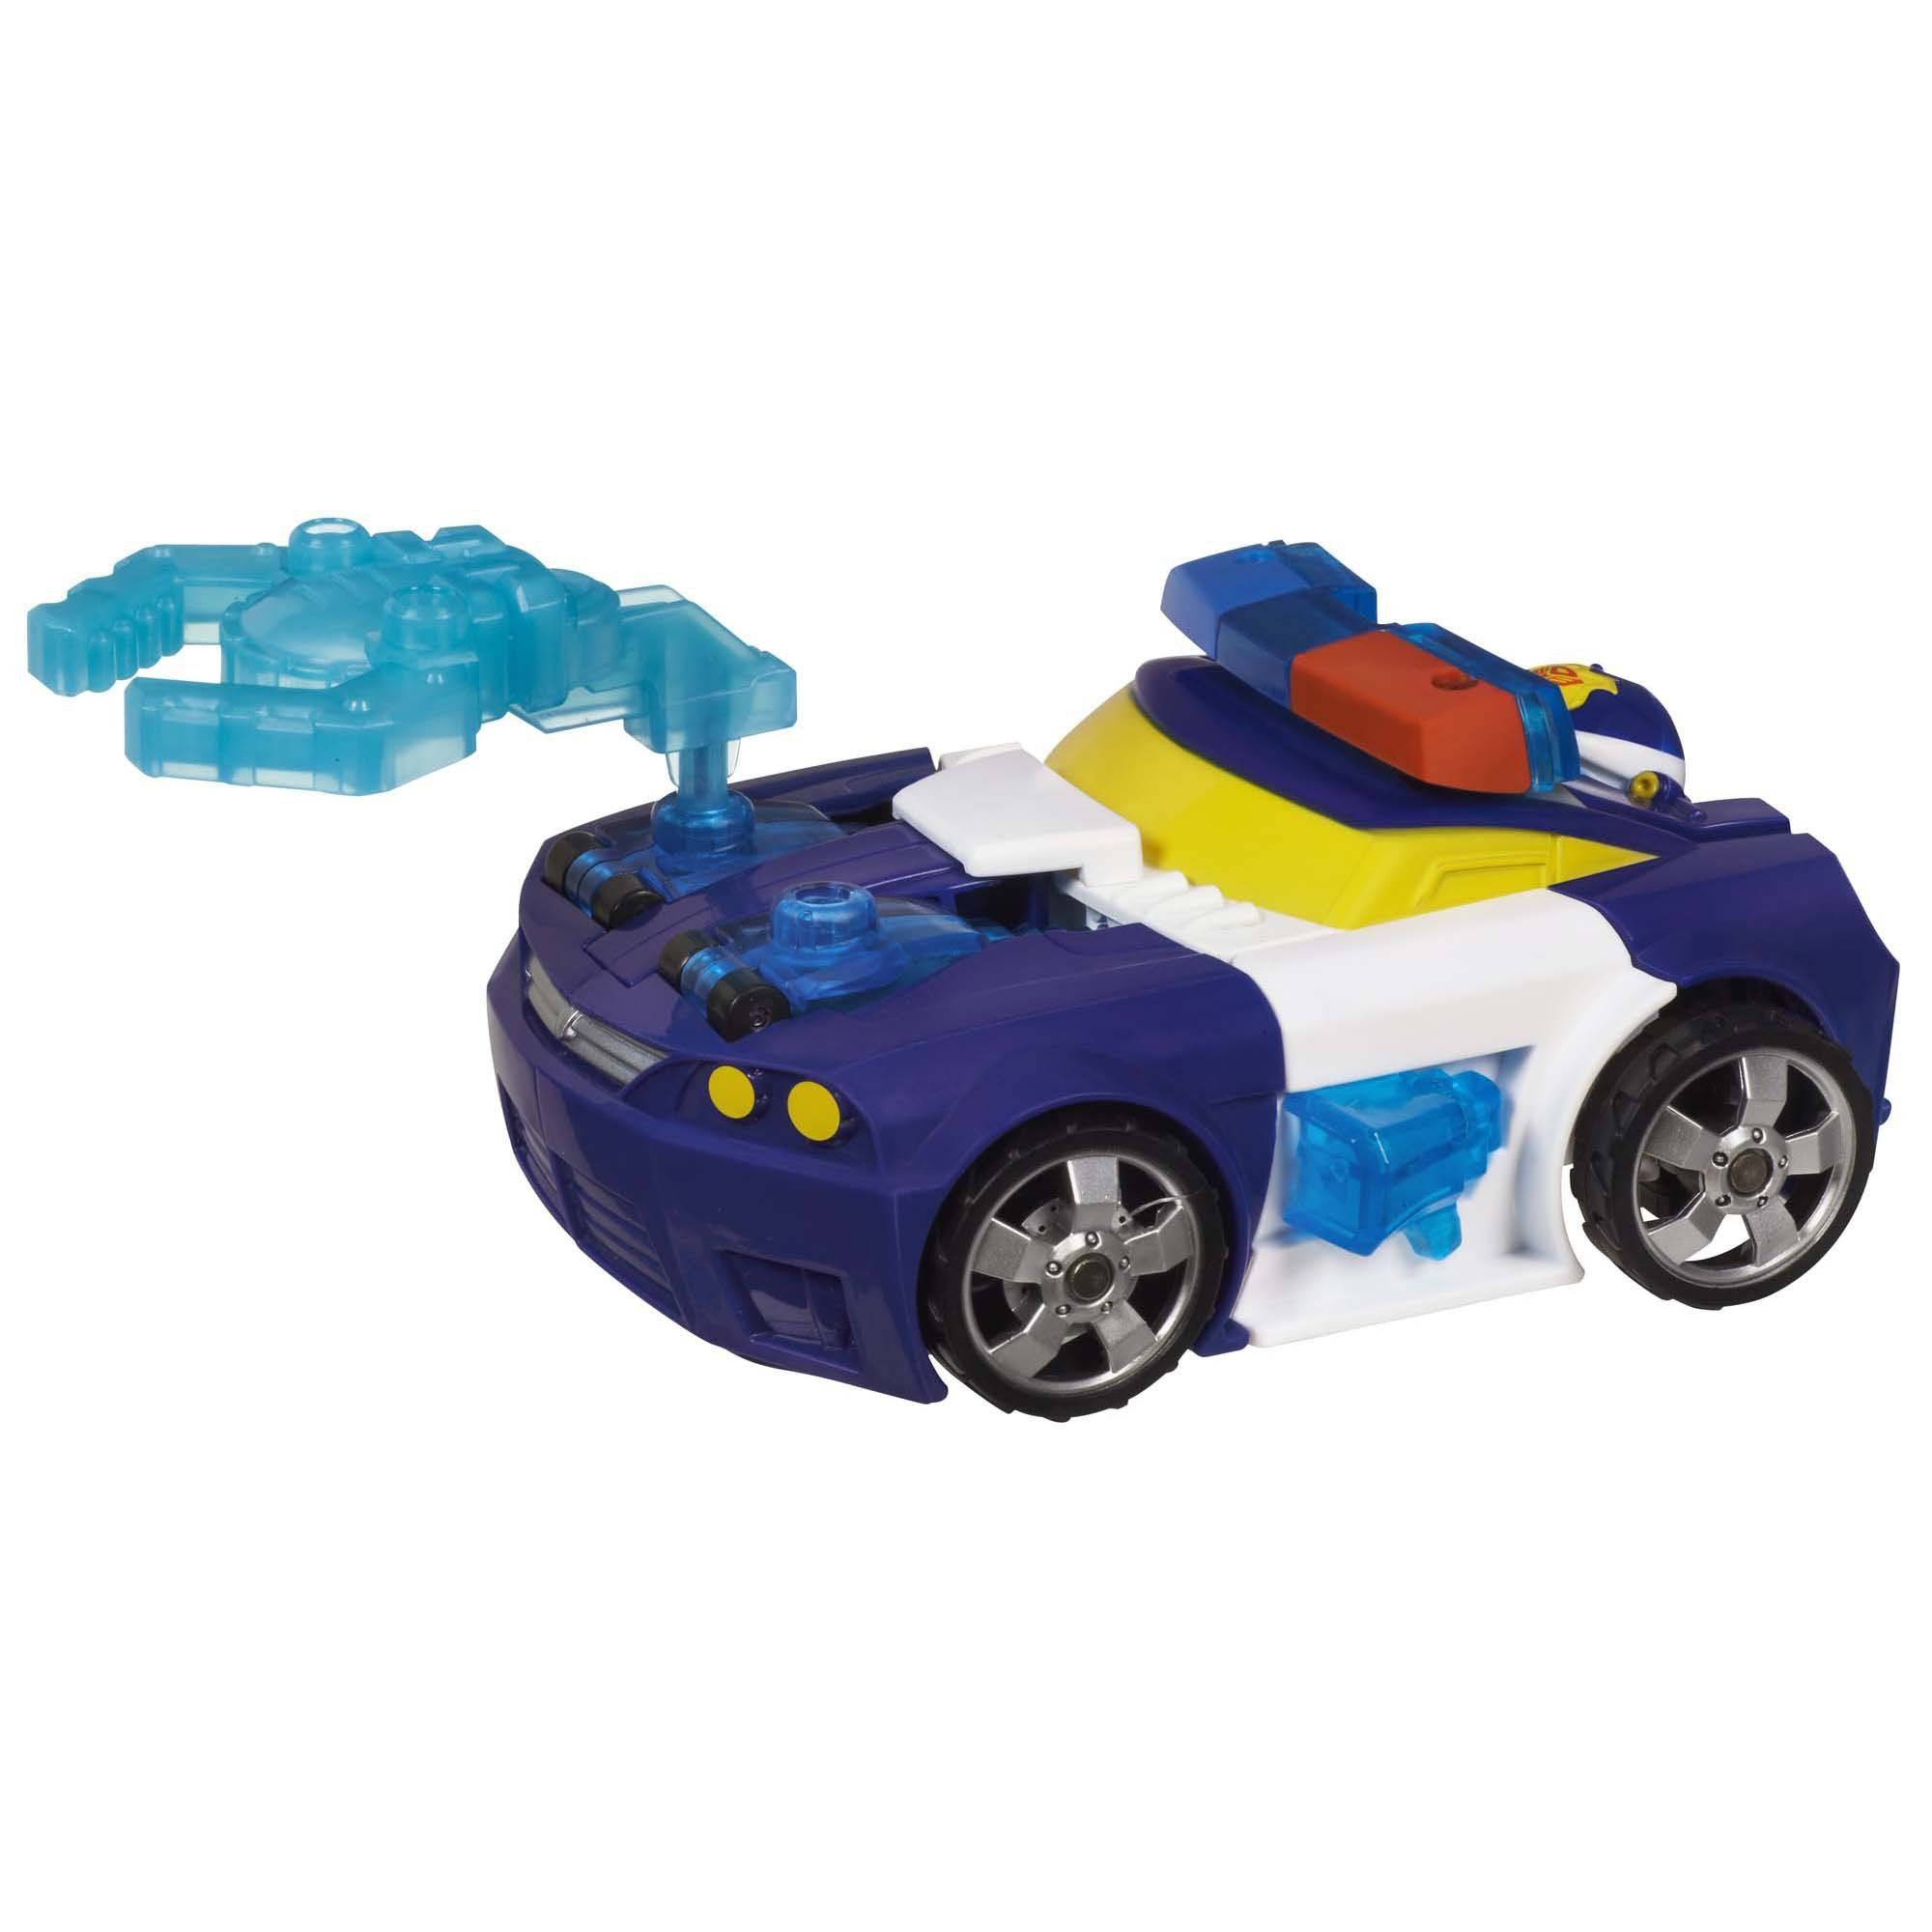 Heroes Transformers Rescue Bots Energize Chase the Police-Bot Action Figure